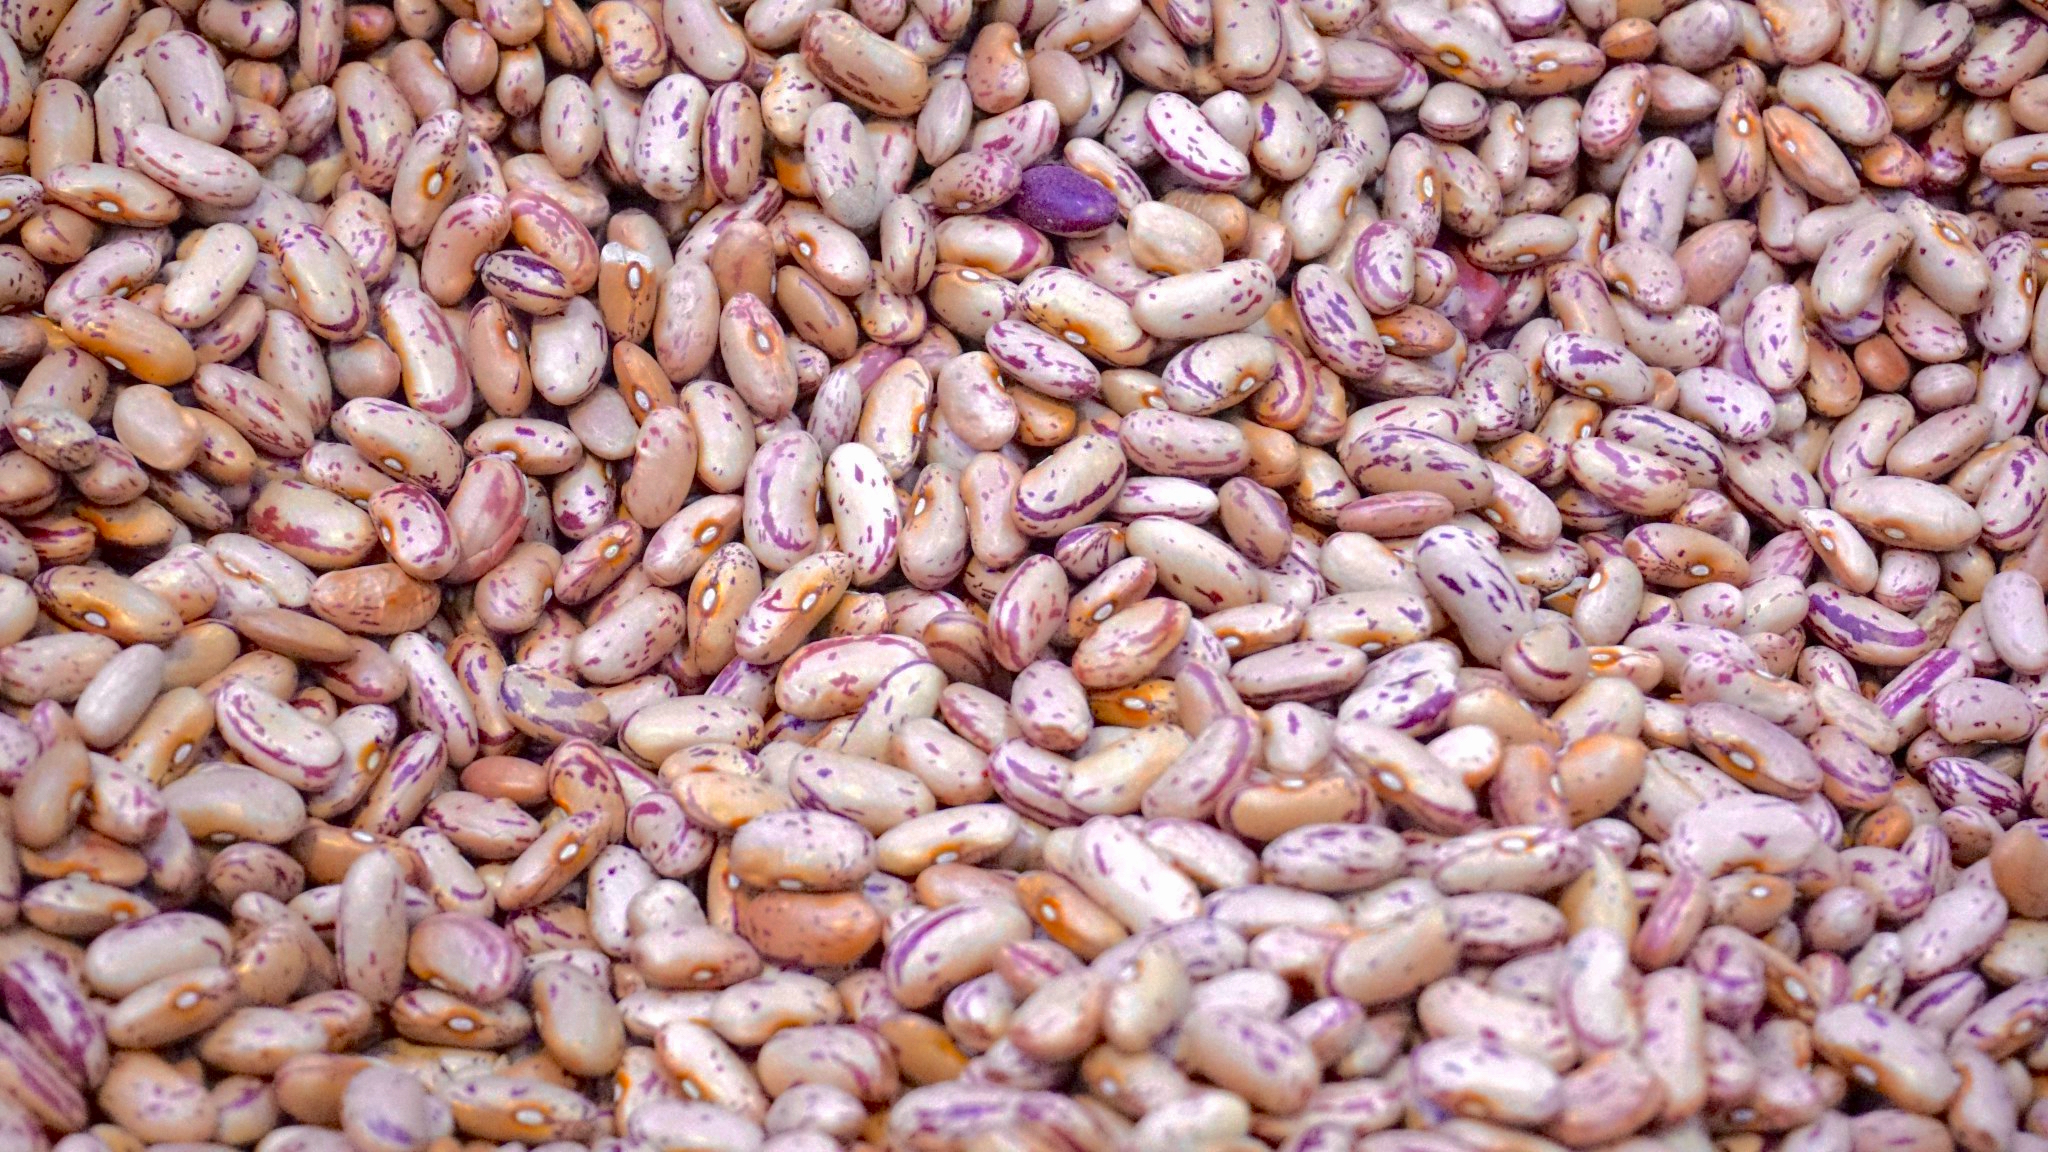 Beans are high in fiber and protein.